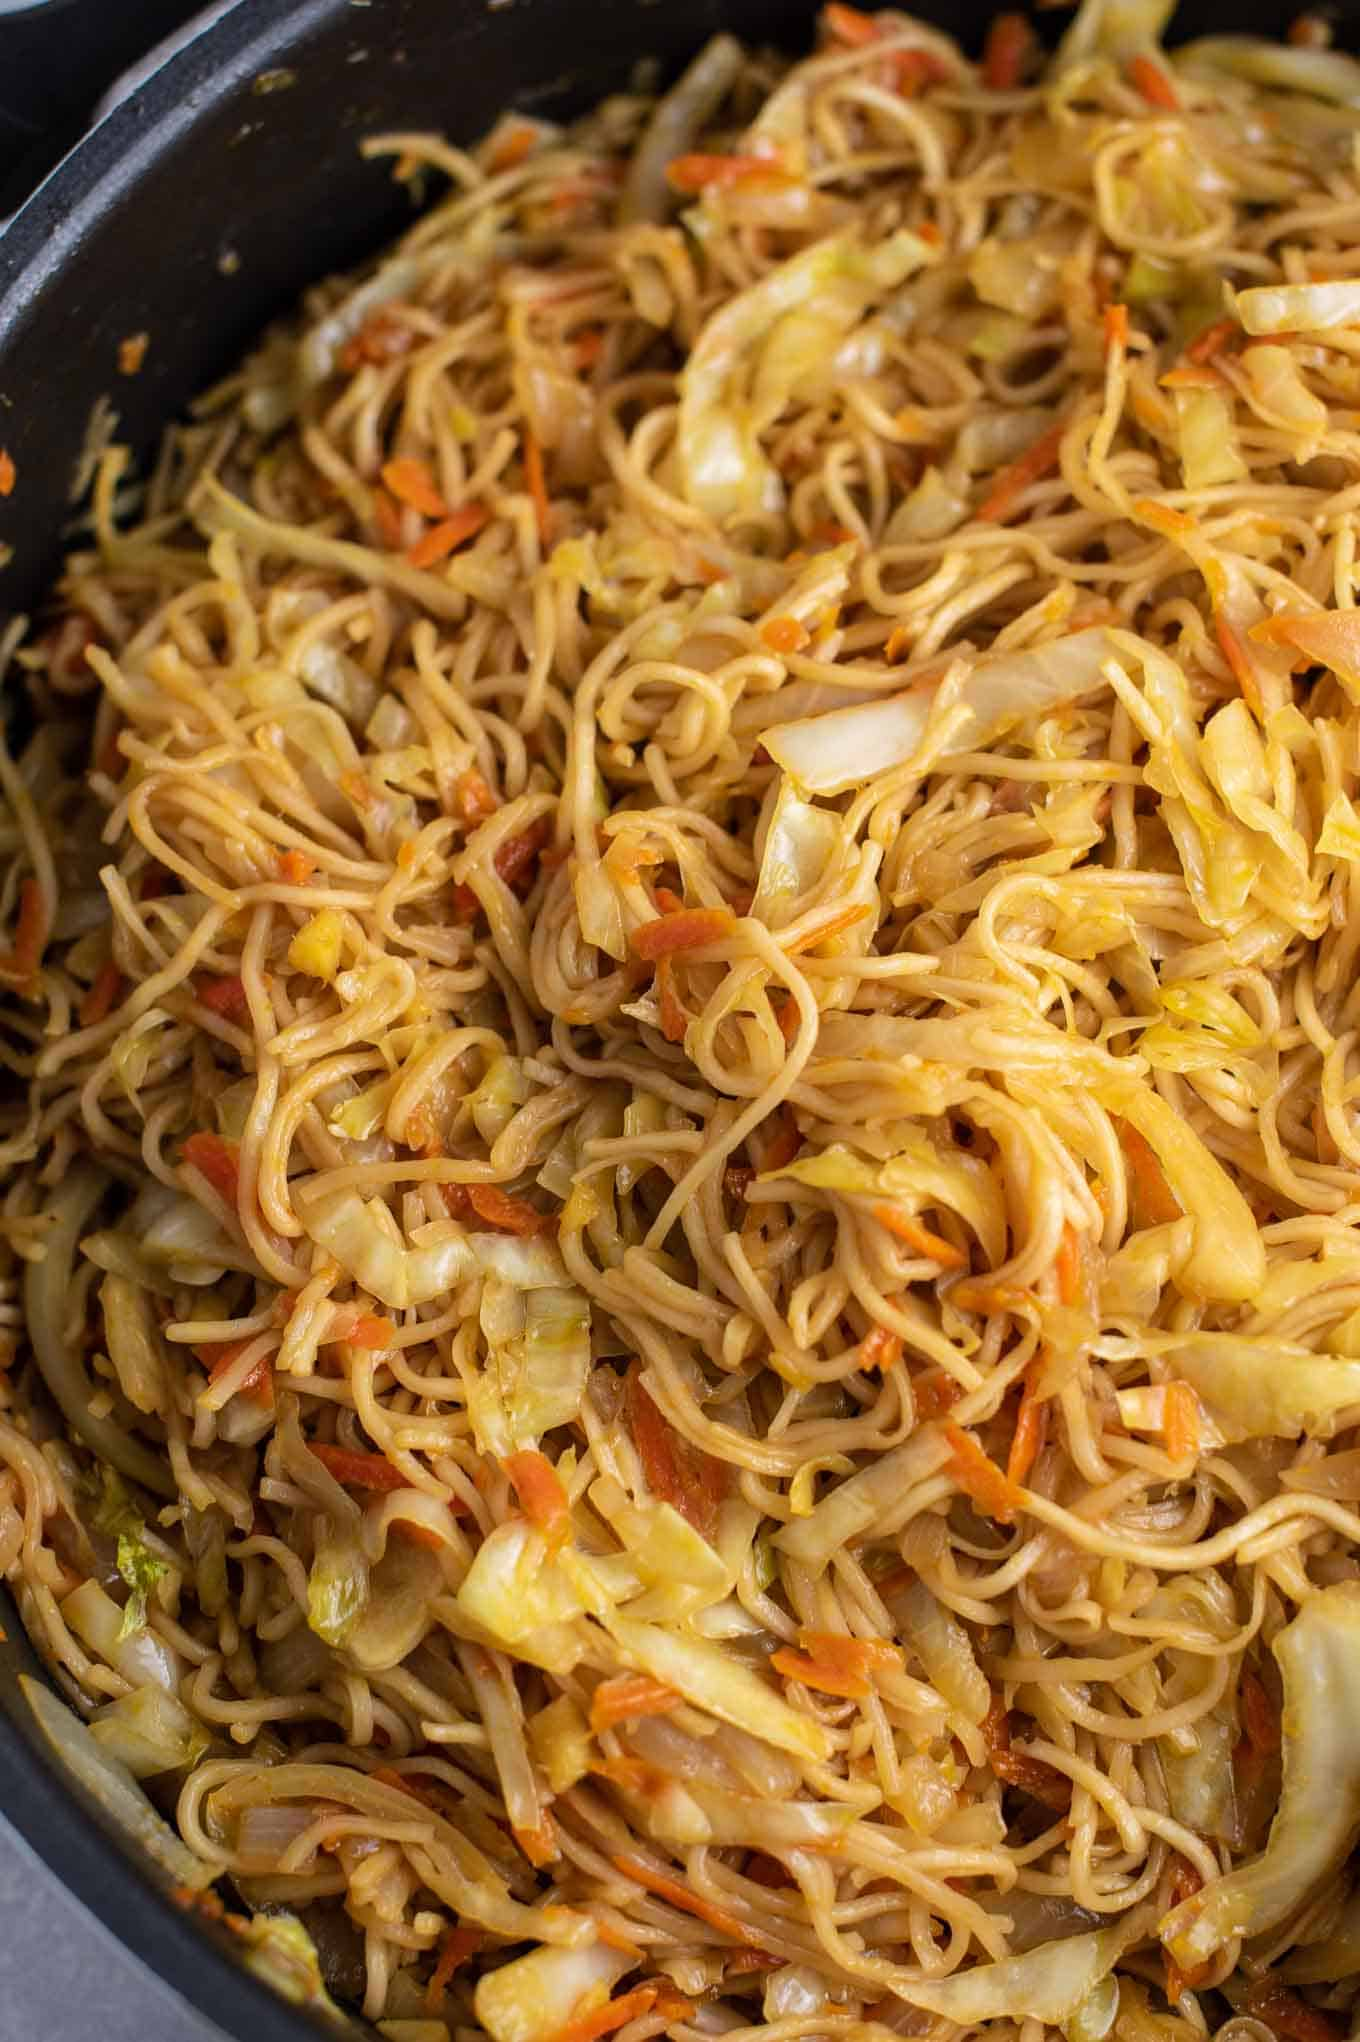 stir fried cabbage and noodles in the skillet